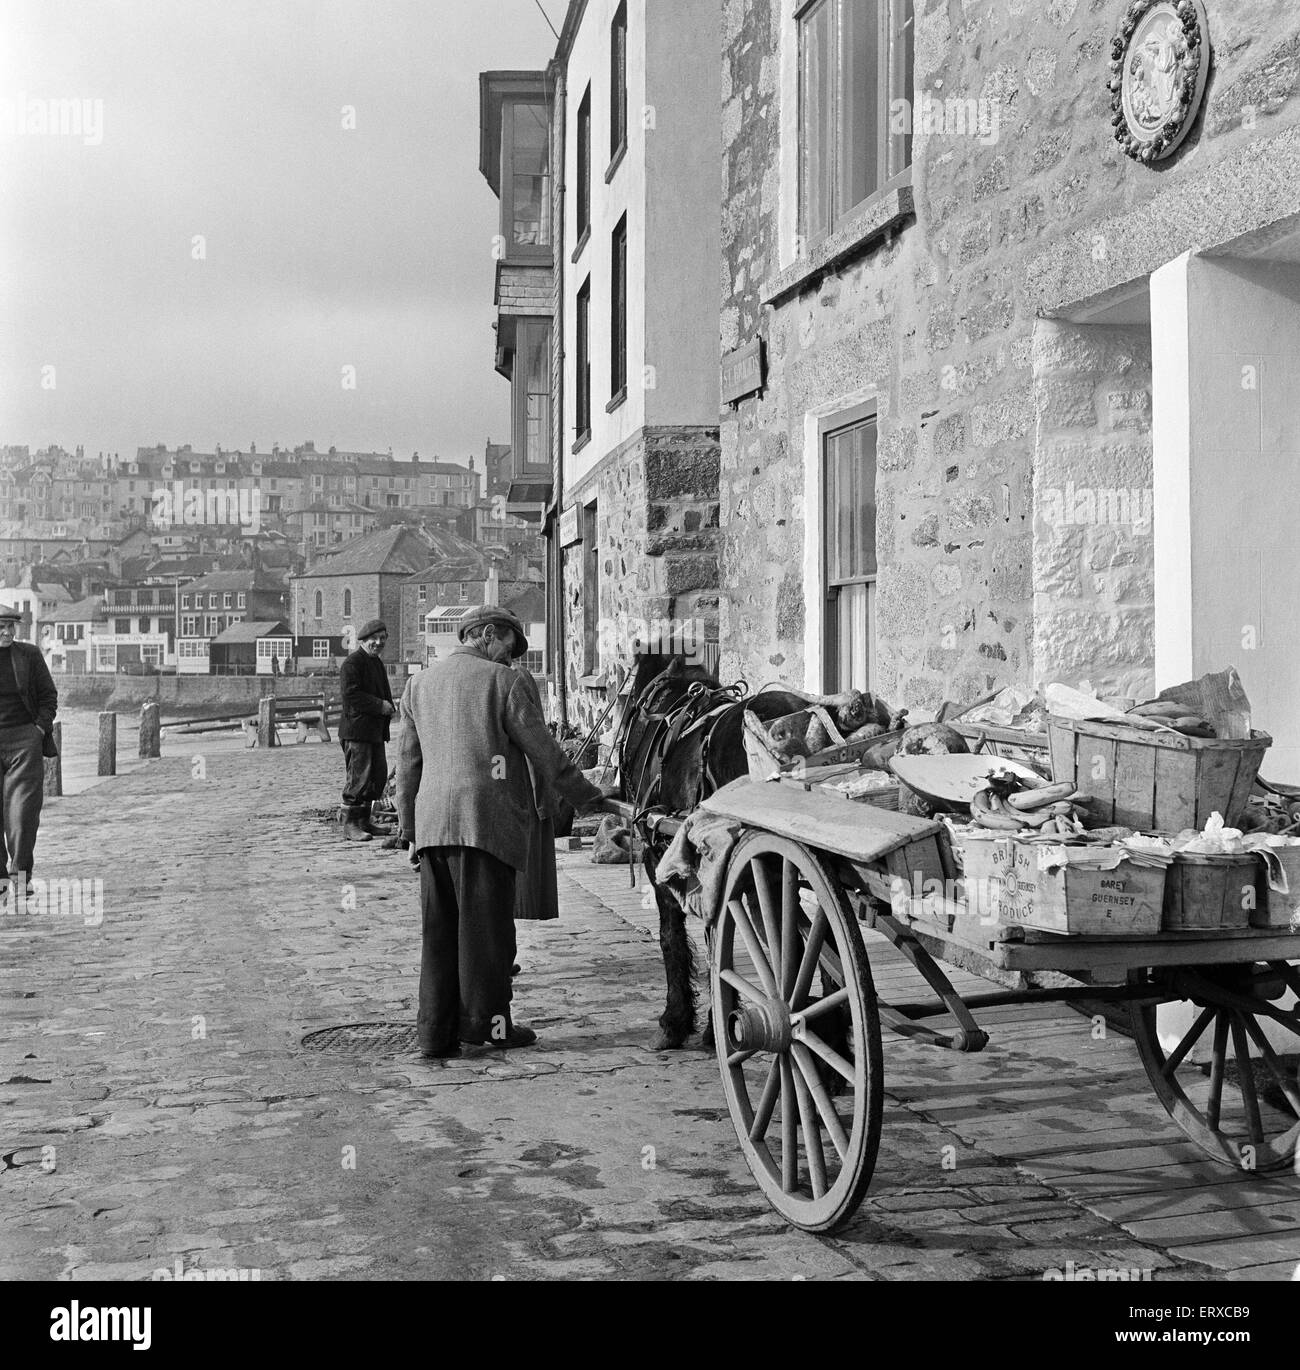 General views of St Ives, Cornwall. A horse and cart pulling fruit and vegetables. 15th February 1954. - Stock Image